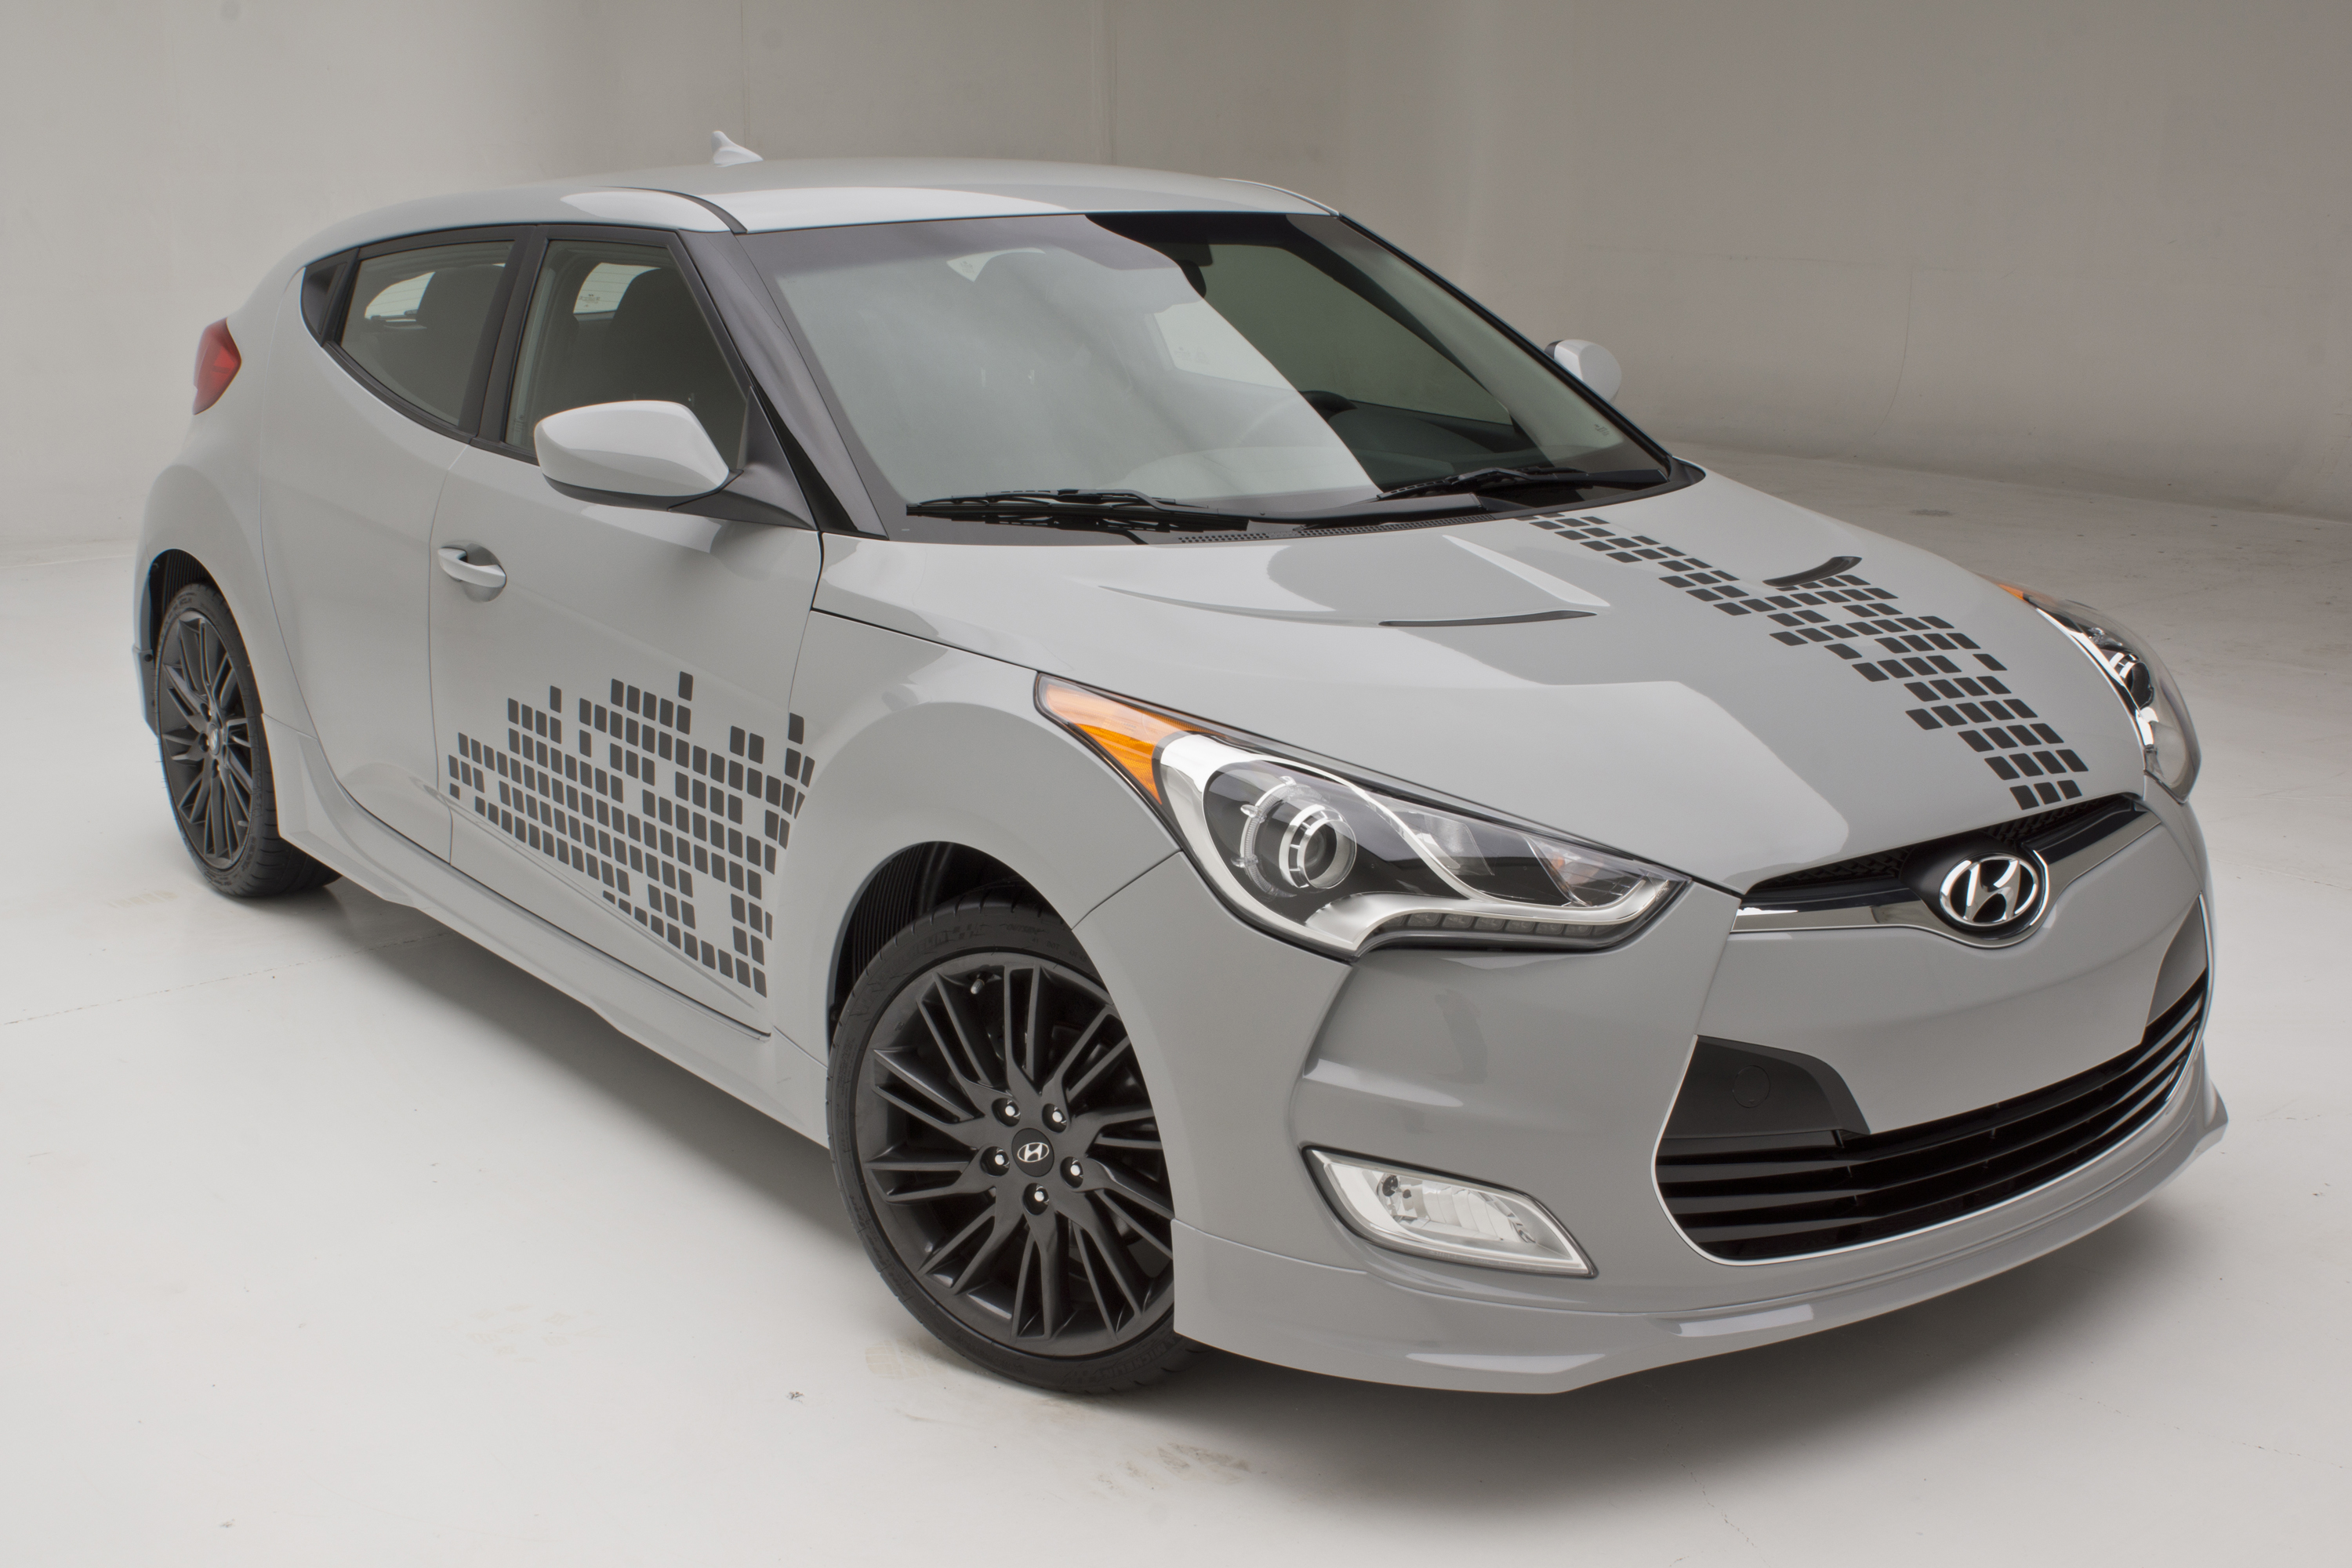 carsedan title sale for information model hyundai living qatar vehicles veloster